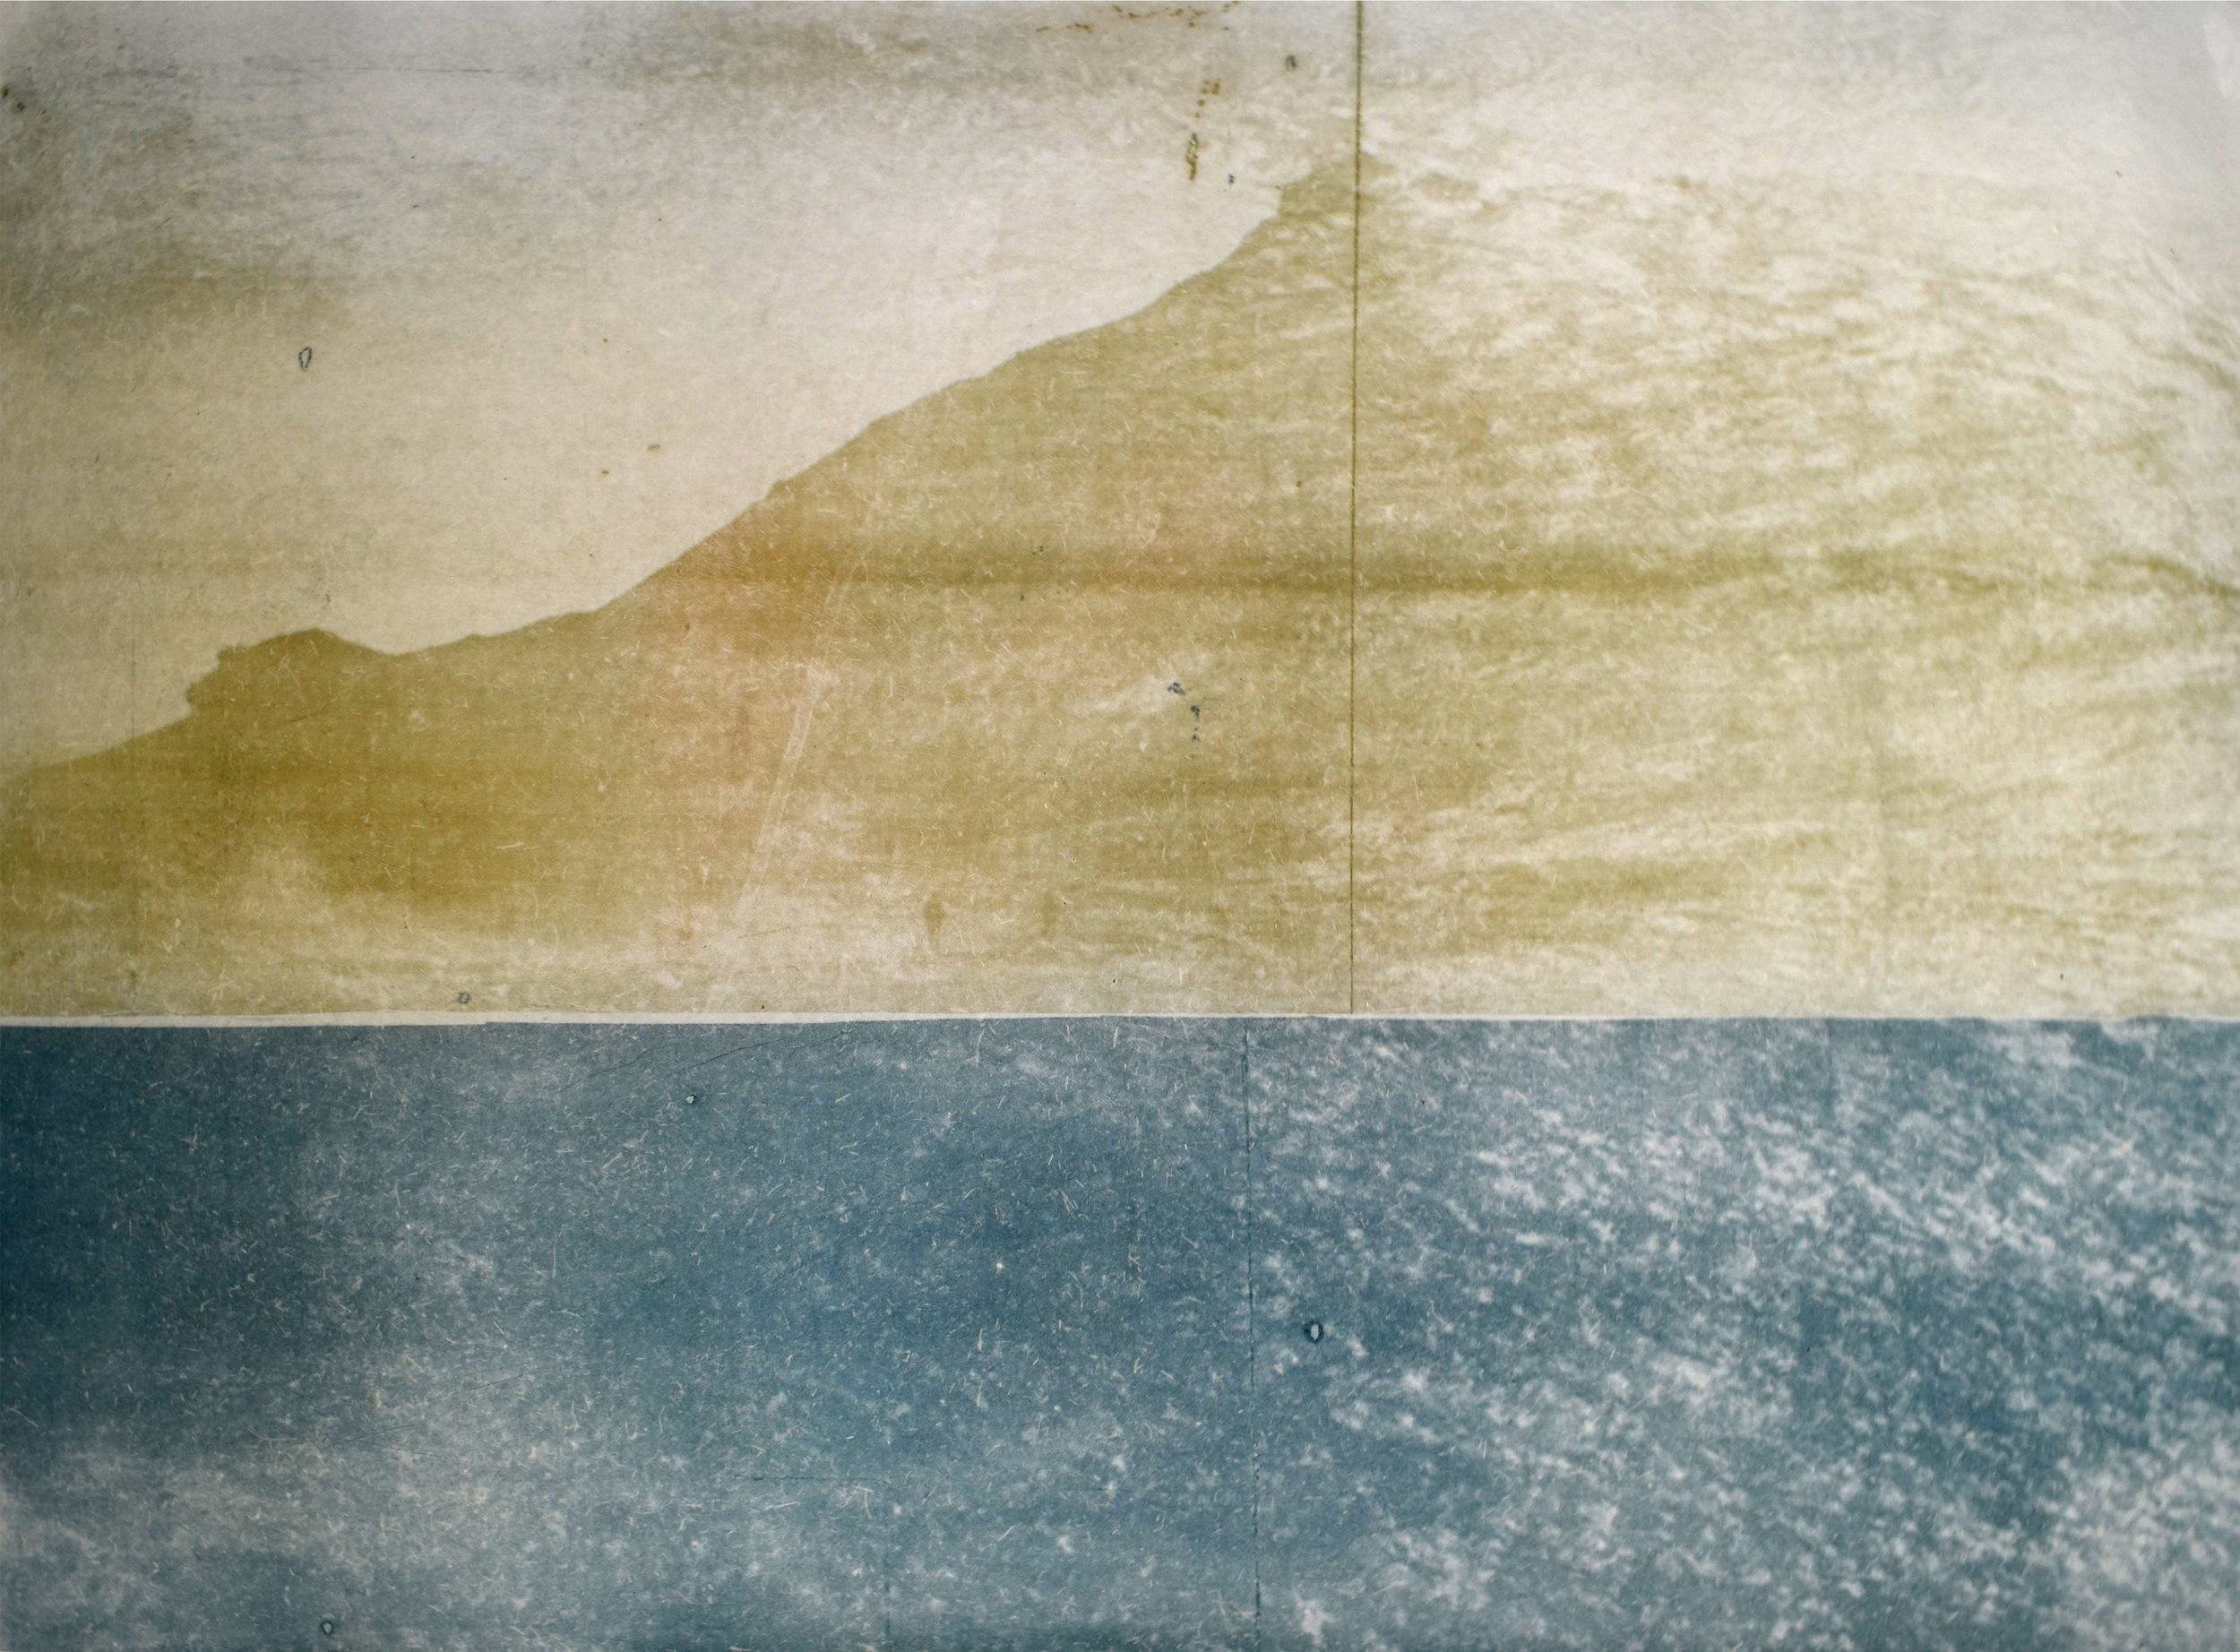 Over and Under (Whirlpool),  No. 12, 2019. Series of 9 photopolymer prints (from Prussian blue to orange oxide) printed on semi-transparent banana paper. 75 x 55cm.. Superposition of 2 photographs taken by the artist: fumerole pits in Námafjall, Iceland and a whirlpool off the Cap Fréhel, France.